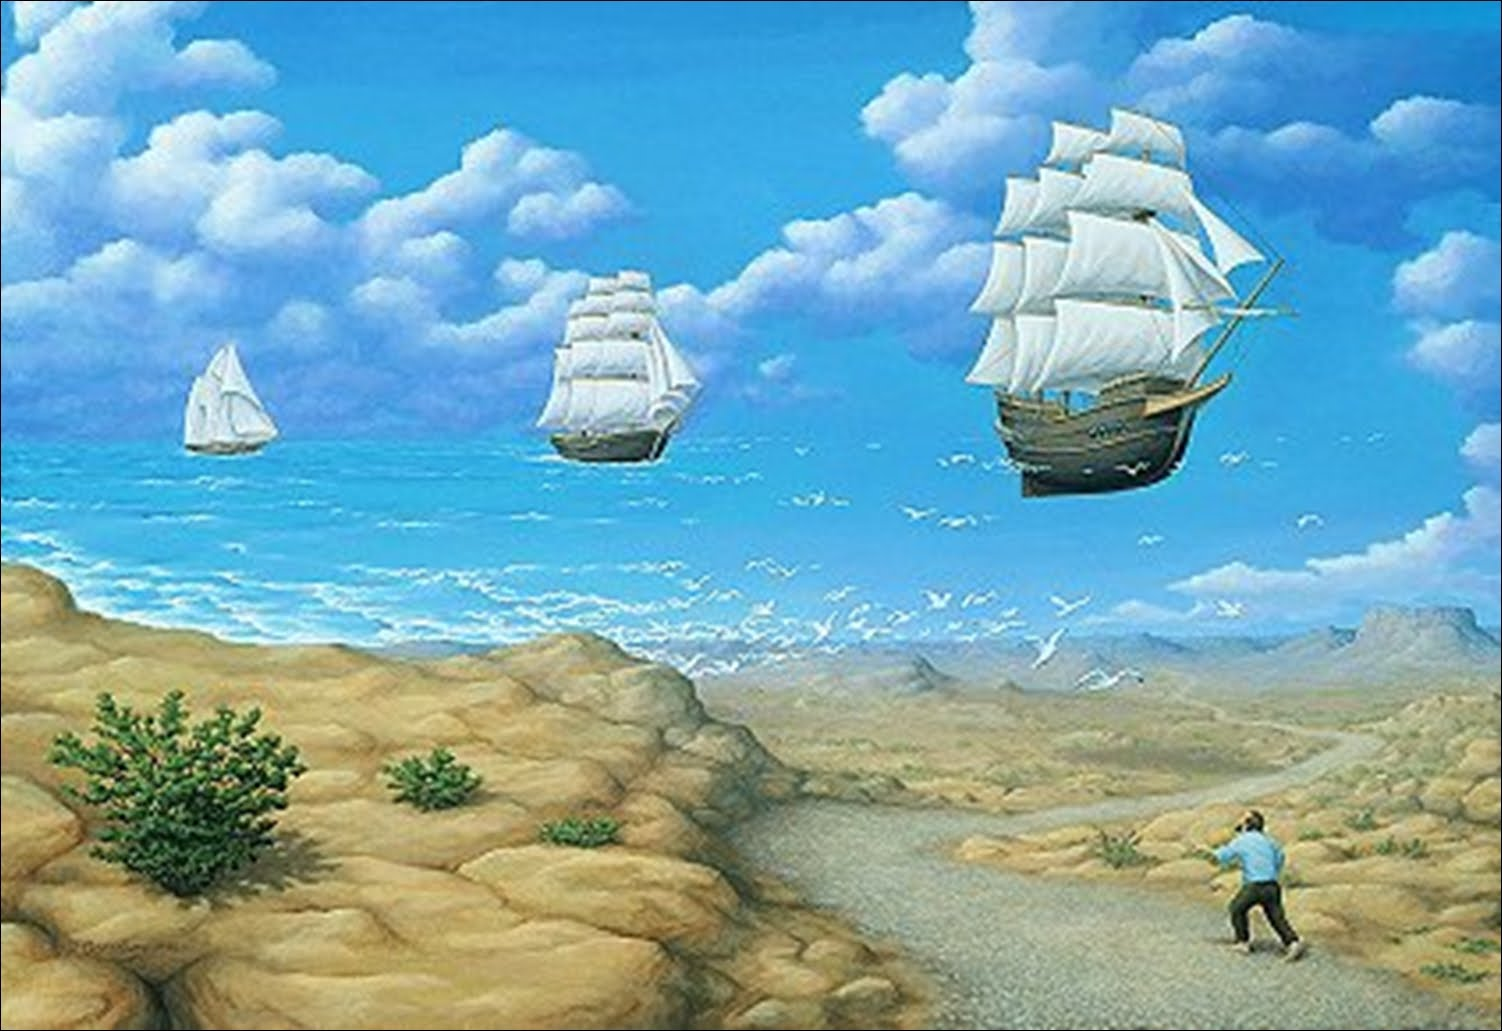 In Search of Sea Rob Gonsalves